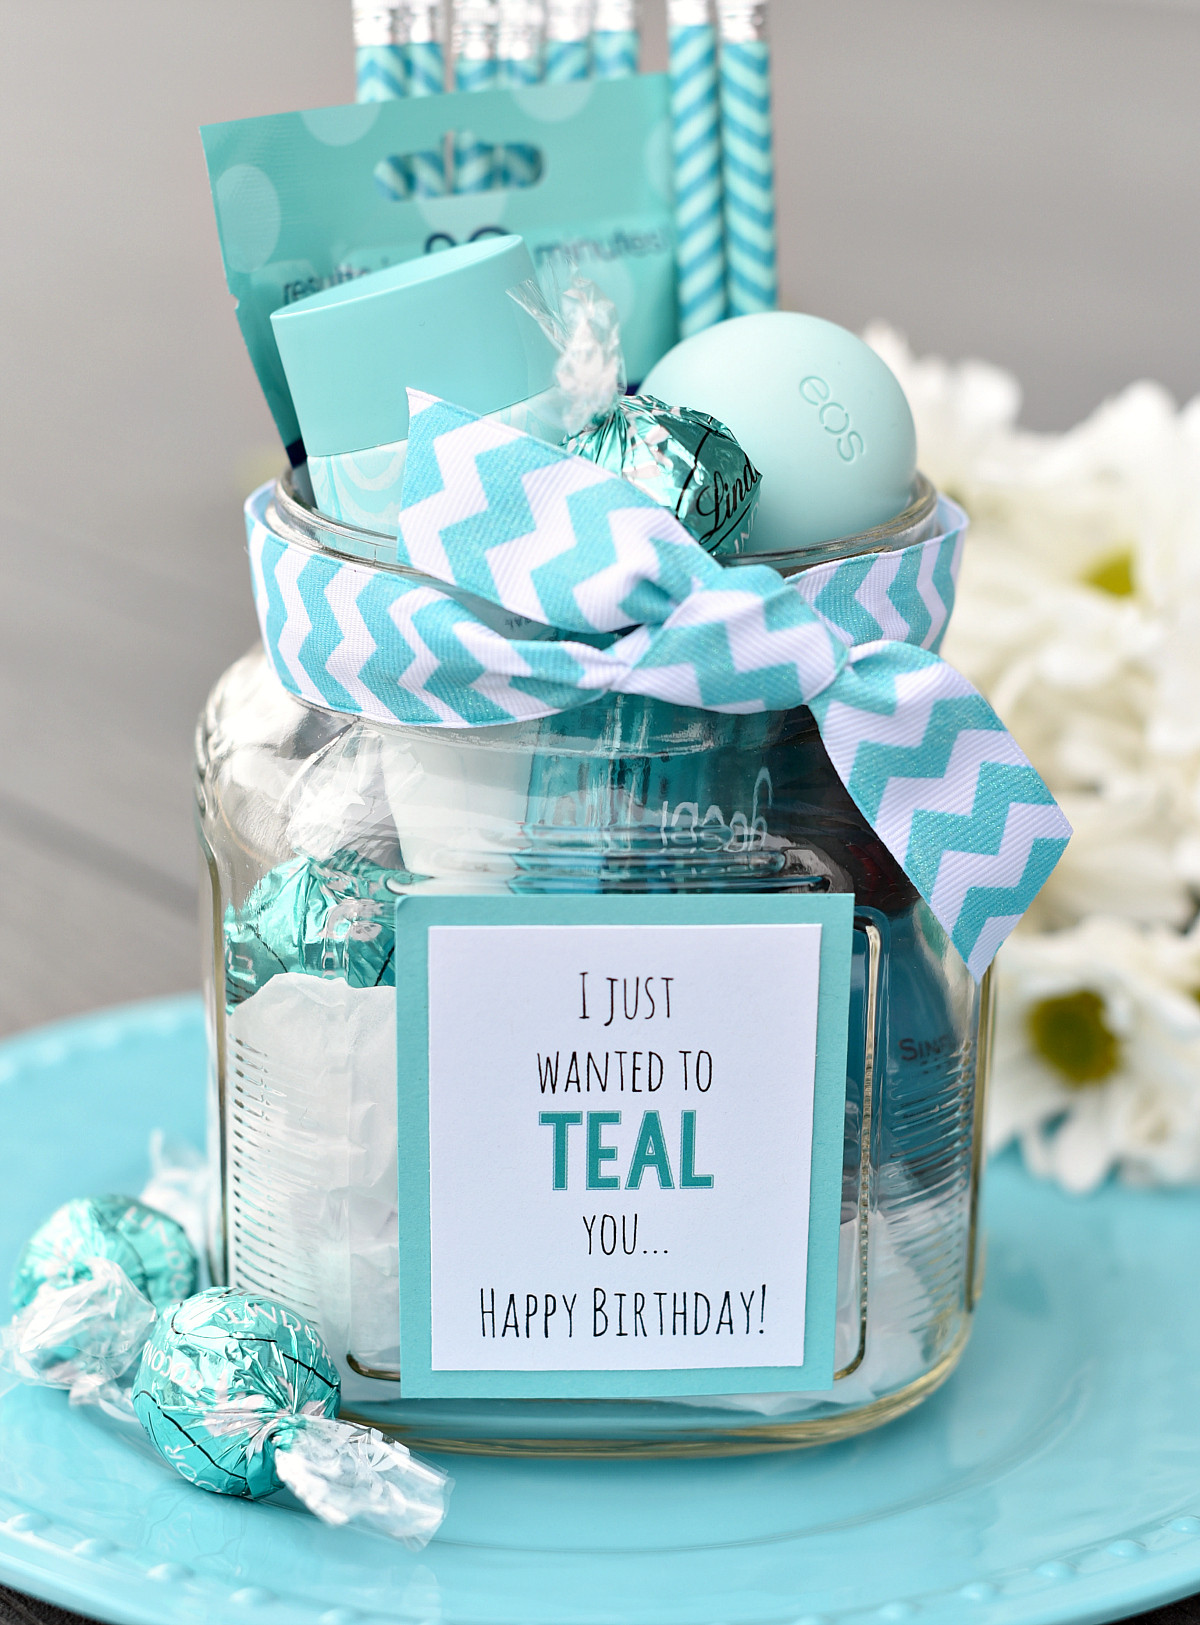 Birthday Gift Ideas For Friend Woman  Teal Birthday Gift Idea for Friends – Fun Squared